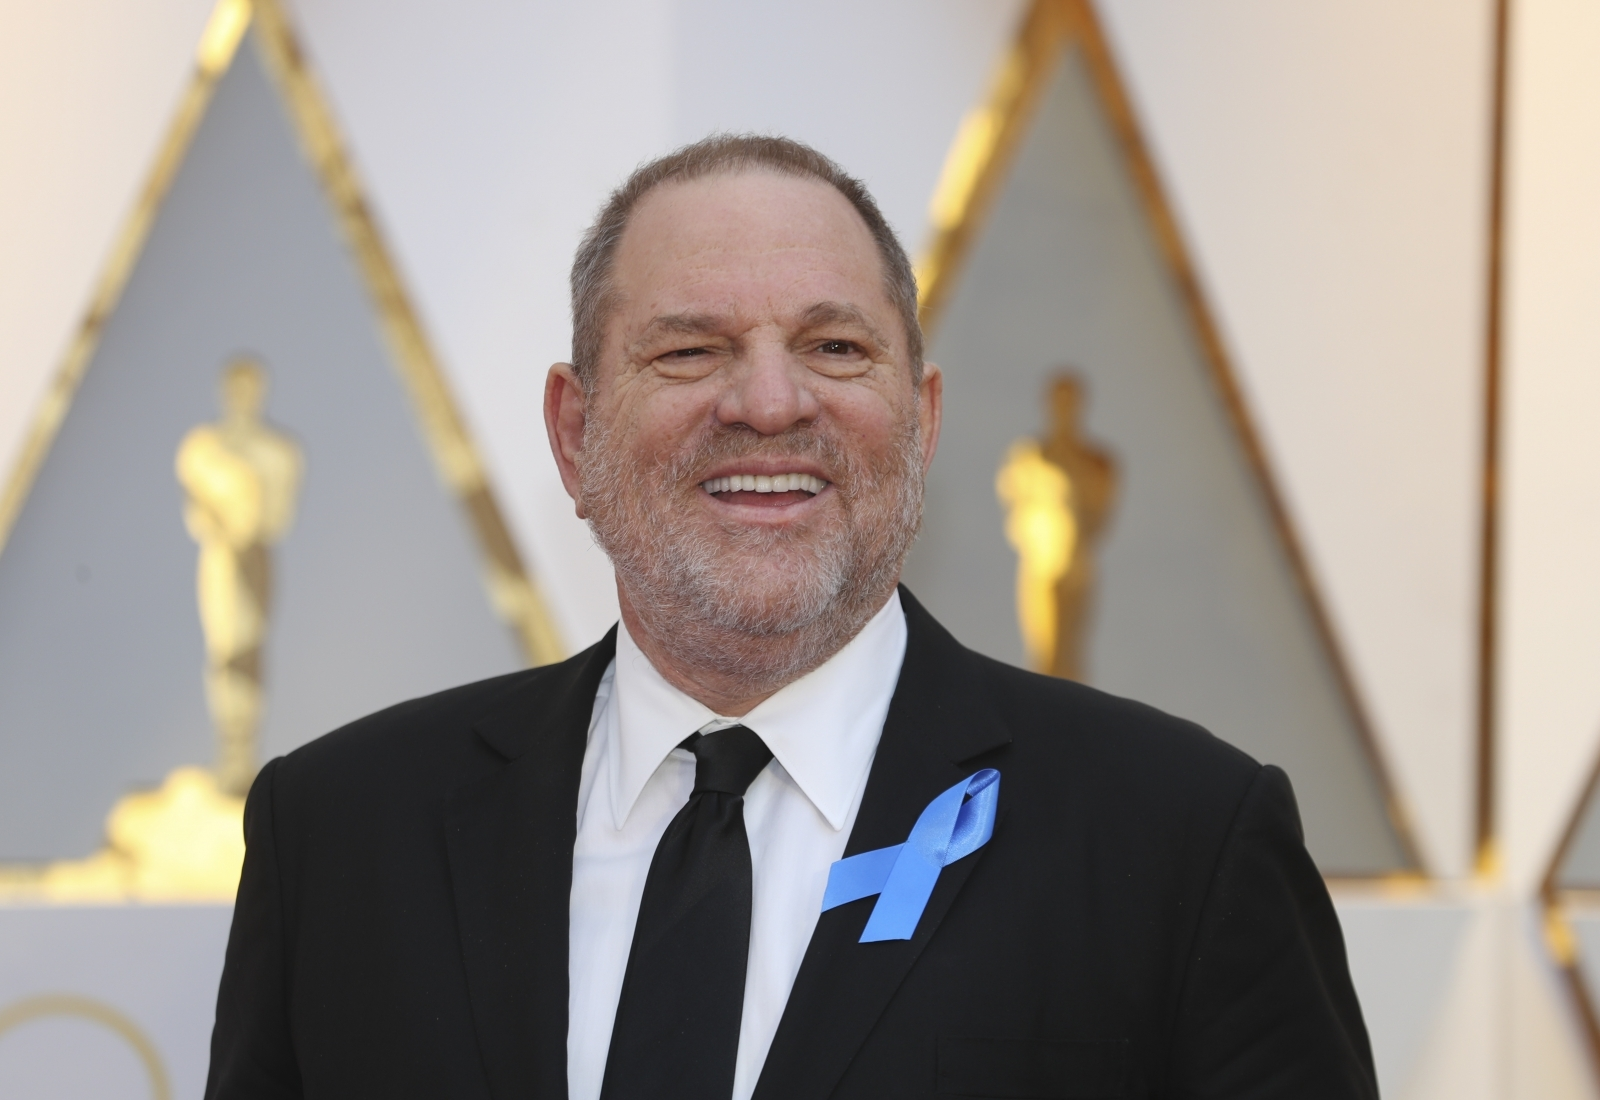 Harvey Weinstein's alleged behaviour is 'inexcusable', says Meryl Streep